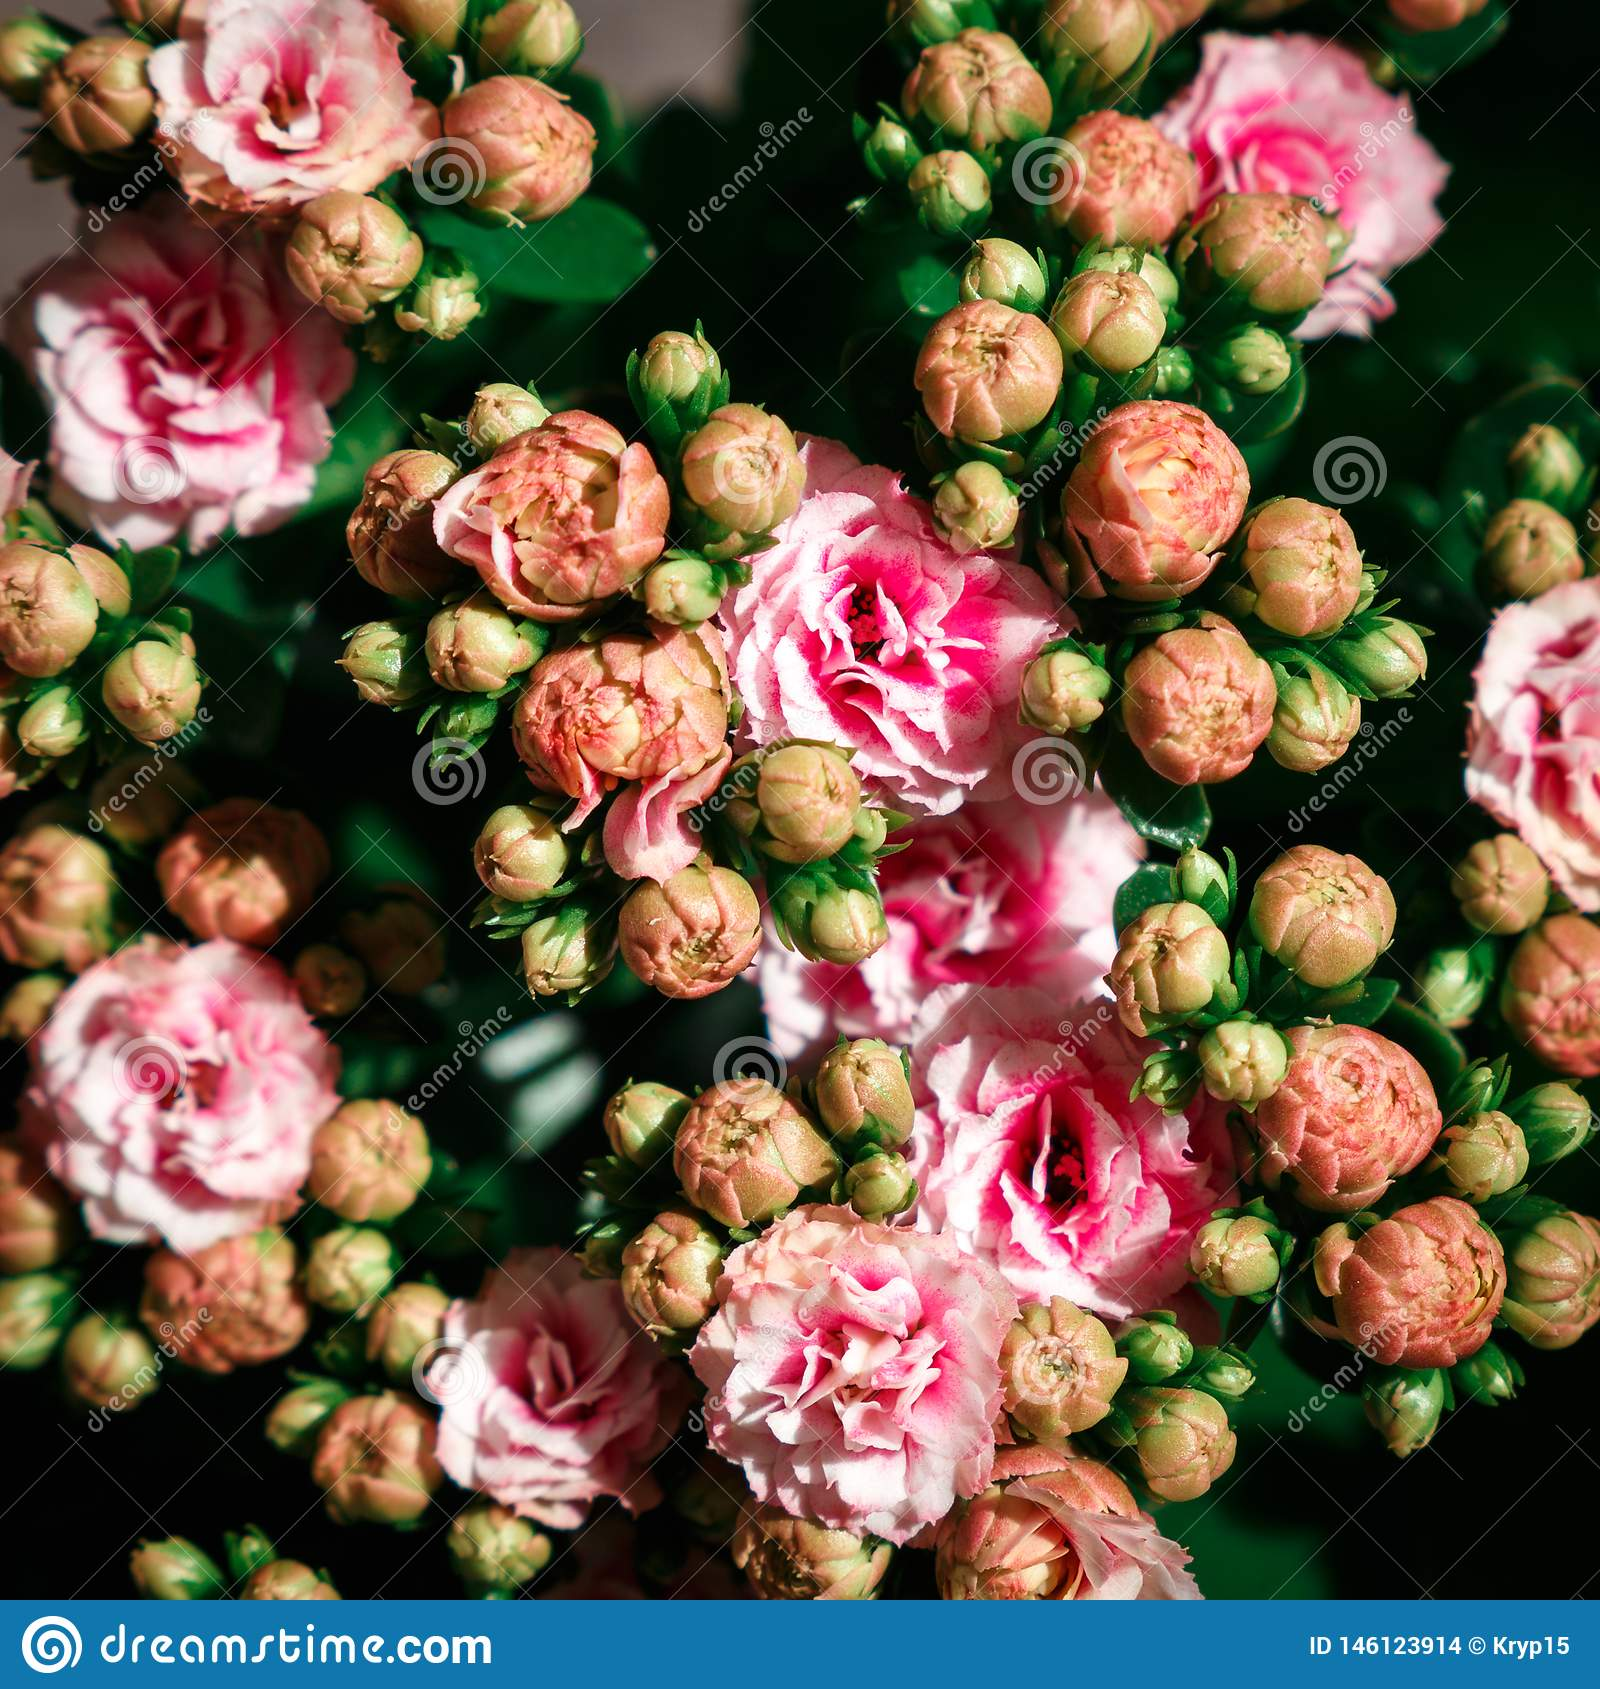 Various pink Kalanchoe flowers on black background. Flat lay